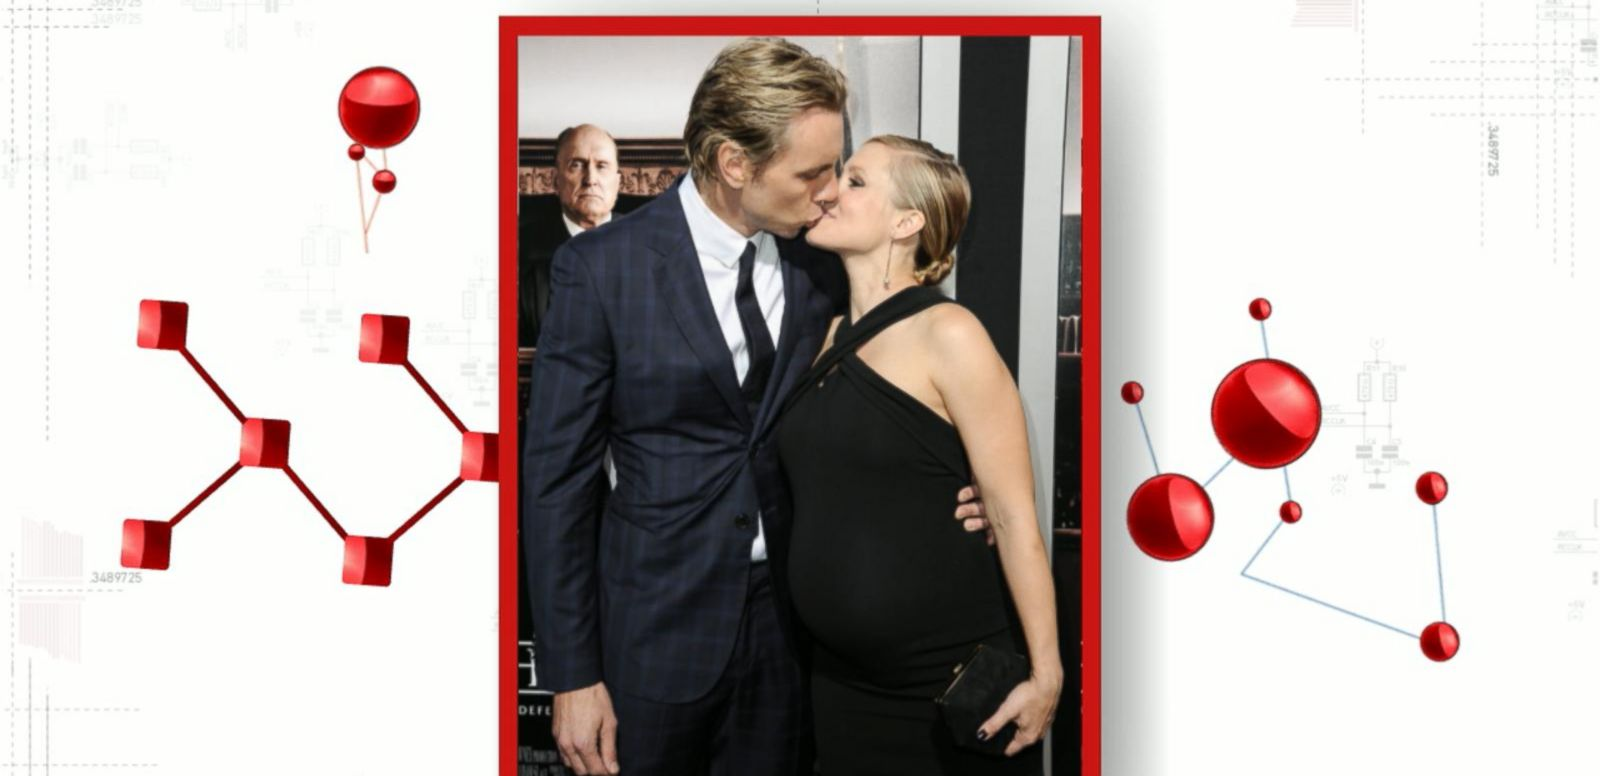 VIDEO: Kristen Bell and Dax Shepard Have Baby Girl